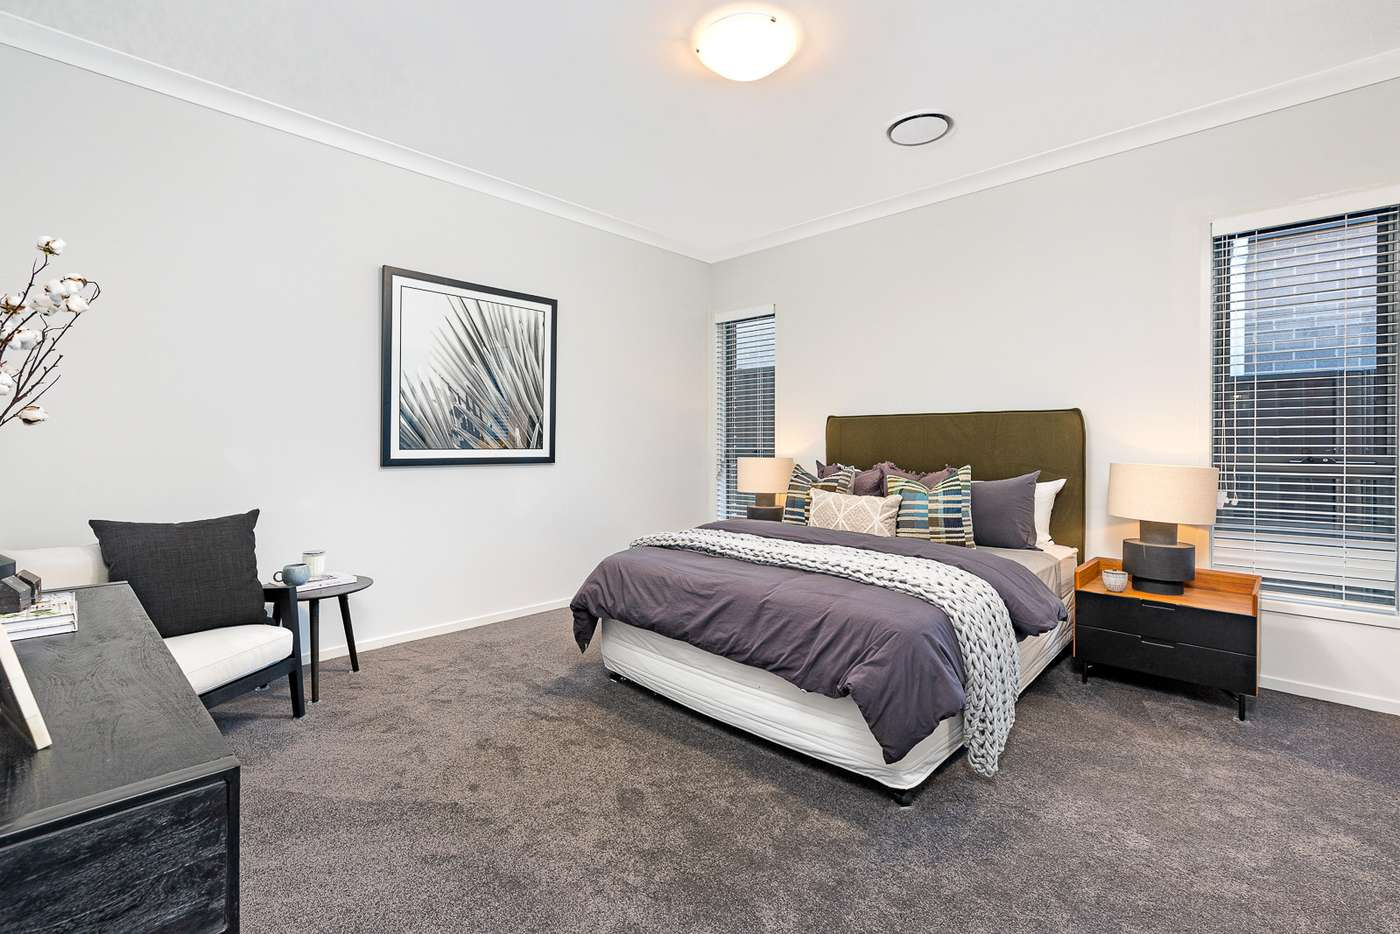 Sixth view of Homely house listing, Lot 701 Parrington Street, Schofields NSW 2762